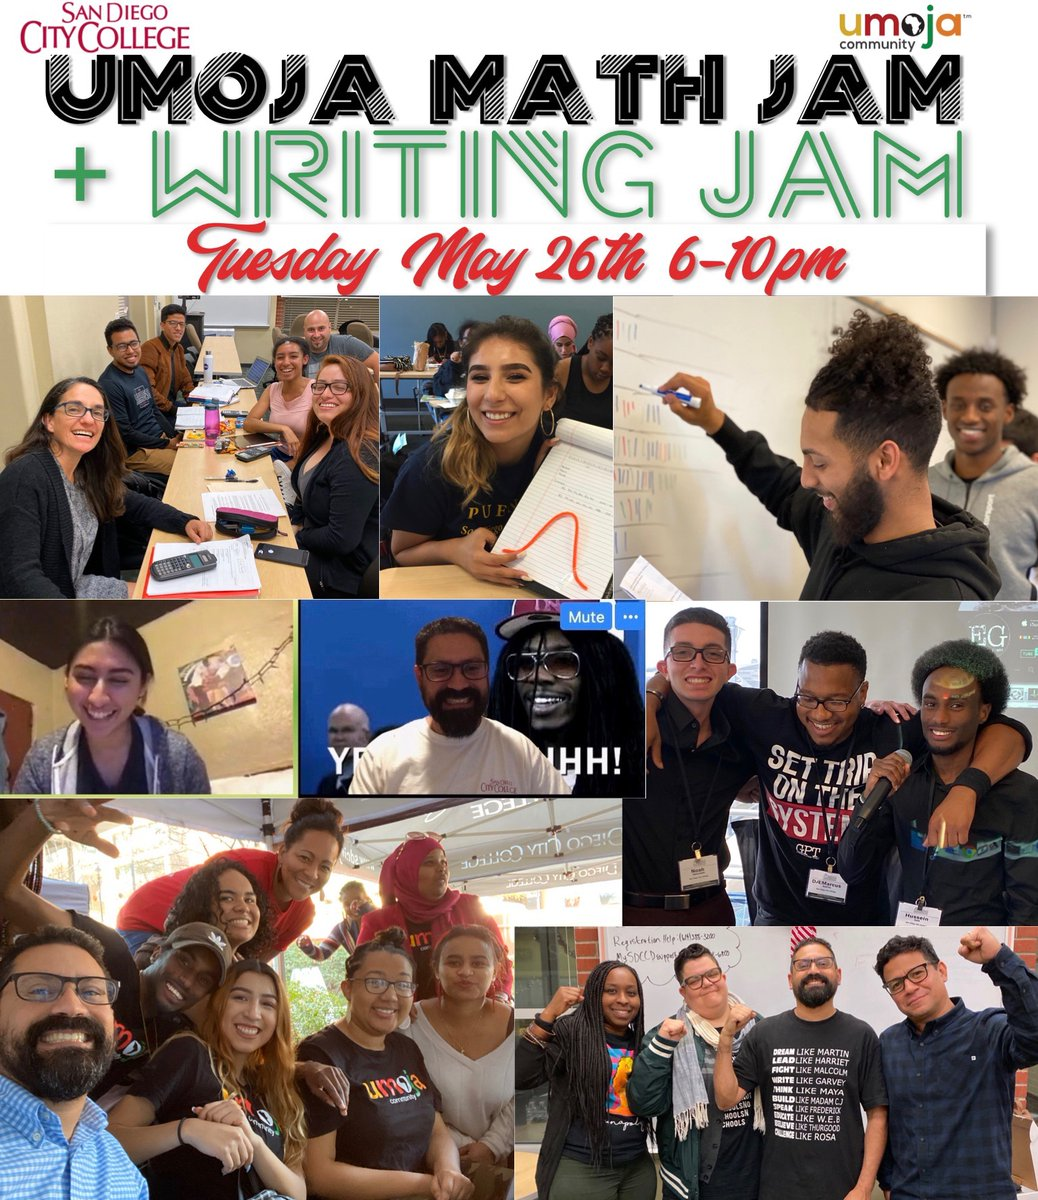 Join us tonight for the Umoja Math Jam!!! We study together, succeed together, graduate together!!! #SDCC #cityproud #sdcity<br>http://pic.twitter.com/6caPNdytOR